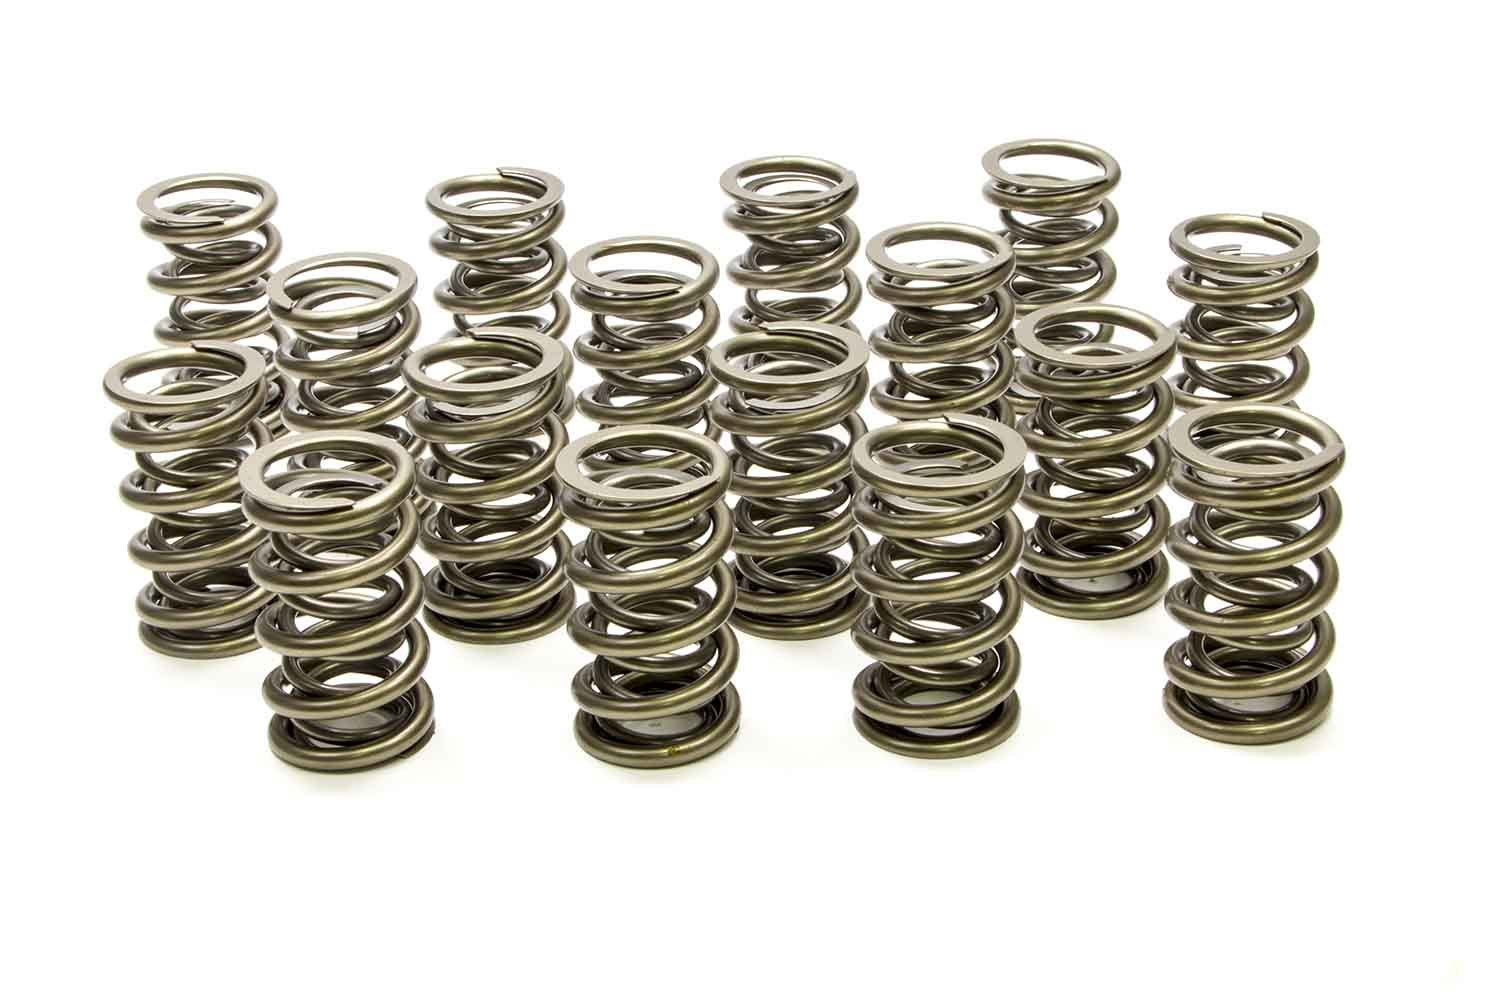 PAC Racing Springs PAC-1386 Valve Spring, 1300 Series, Dual Spring, 513 lb/in Spring Rate, 1.150 in Coil Bind, 1.564 in OD, Set of 16